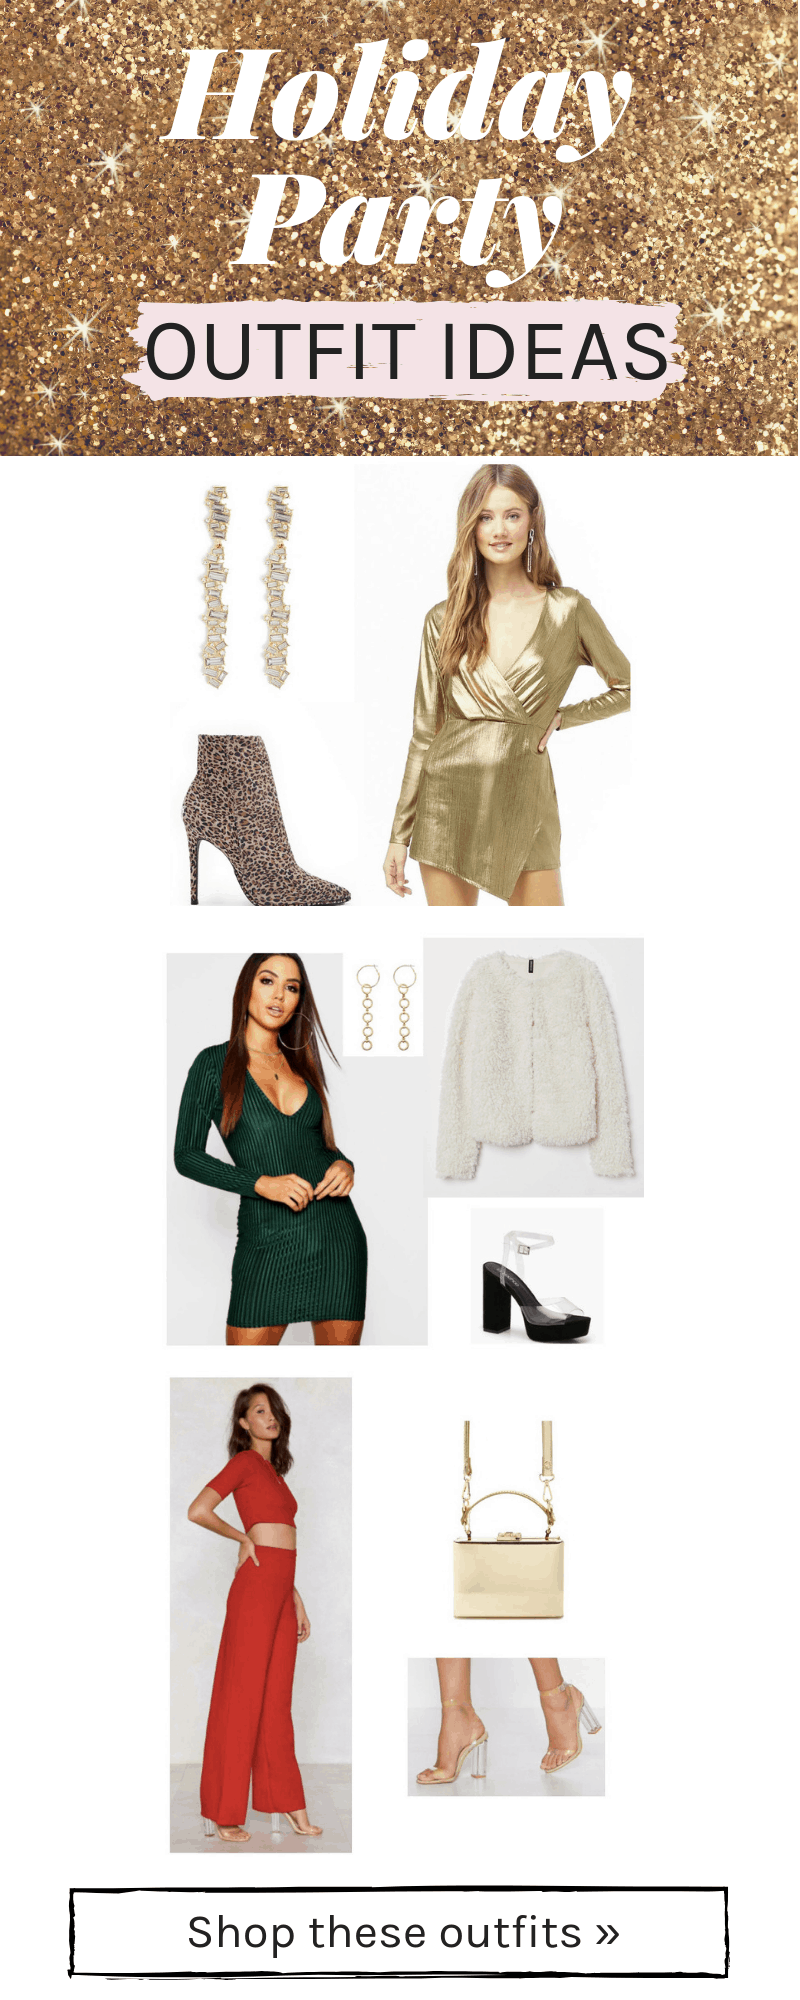 Holiday party outfit ideas for 2018: Cute outfits that are affordable and stylish for any Christmas party